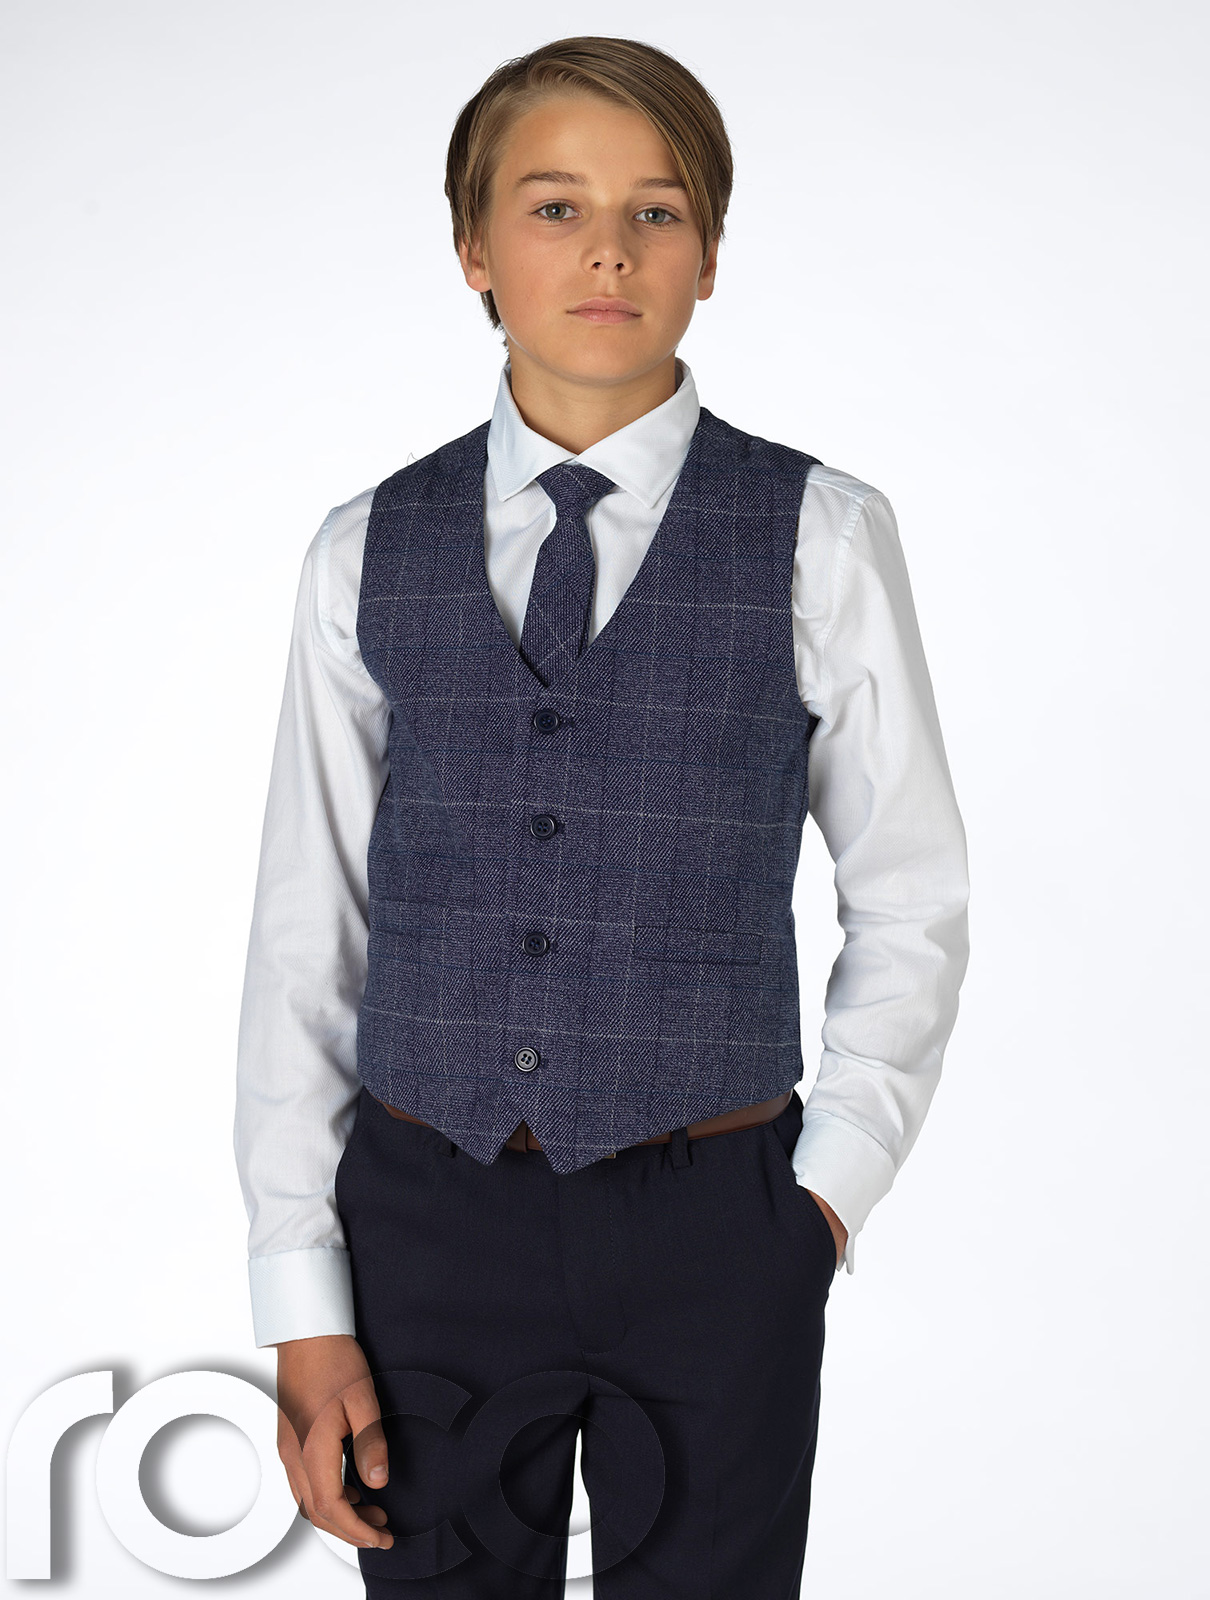 Product Features This Men's Suit Dress Vests Waistcoat with high quality fabric blend.